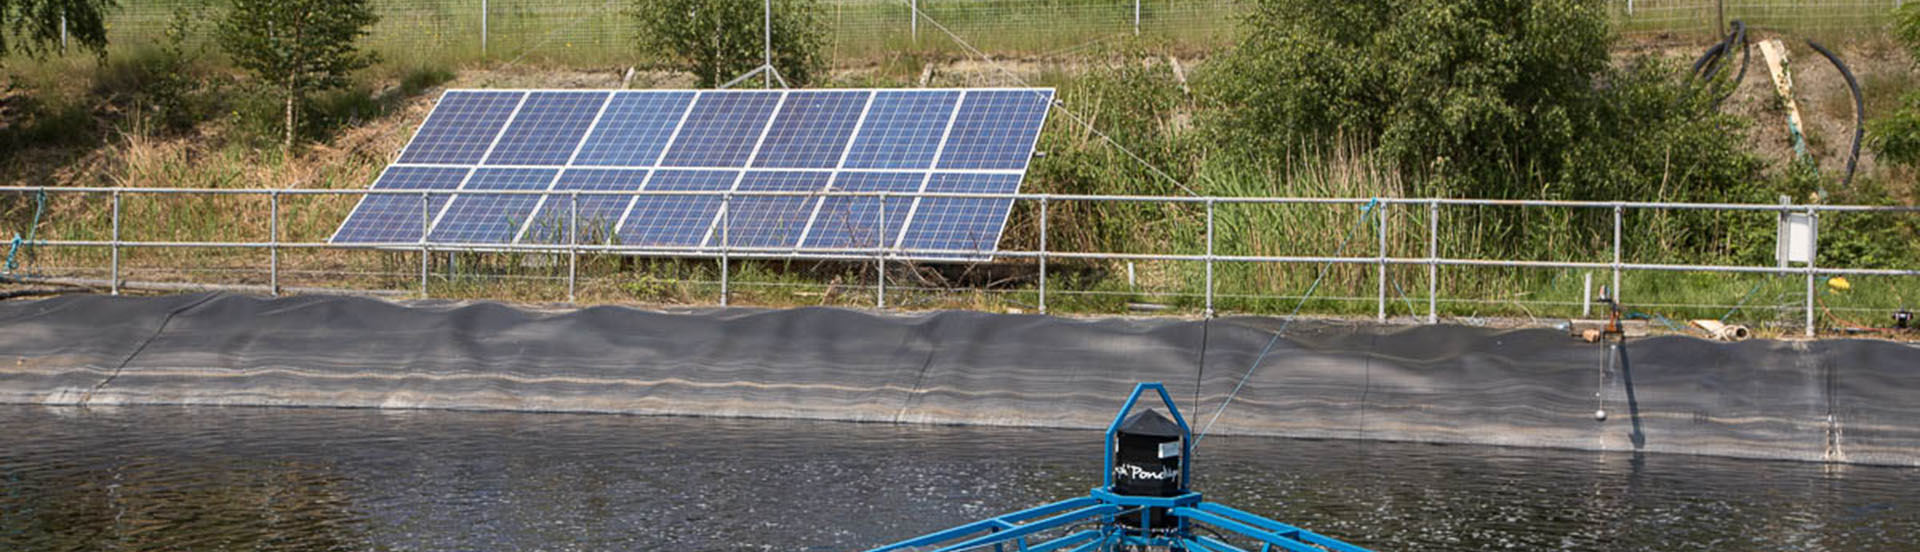 Off grid solar array and aerator